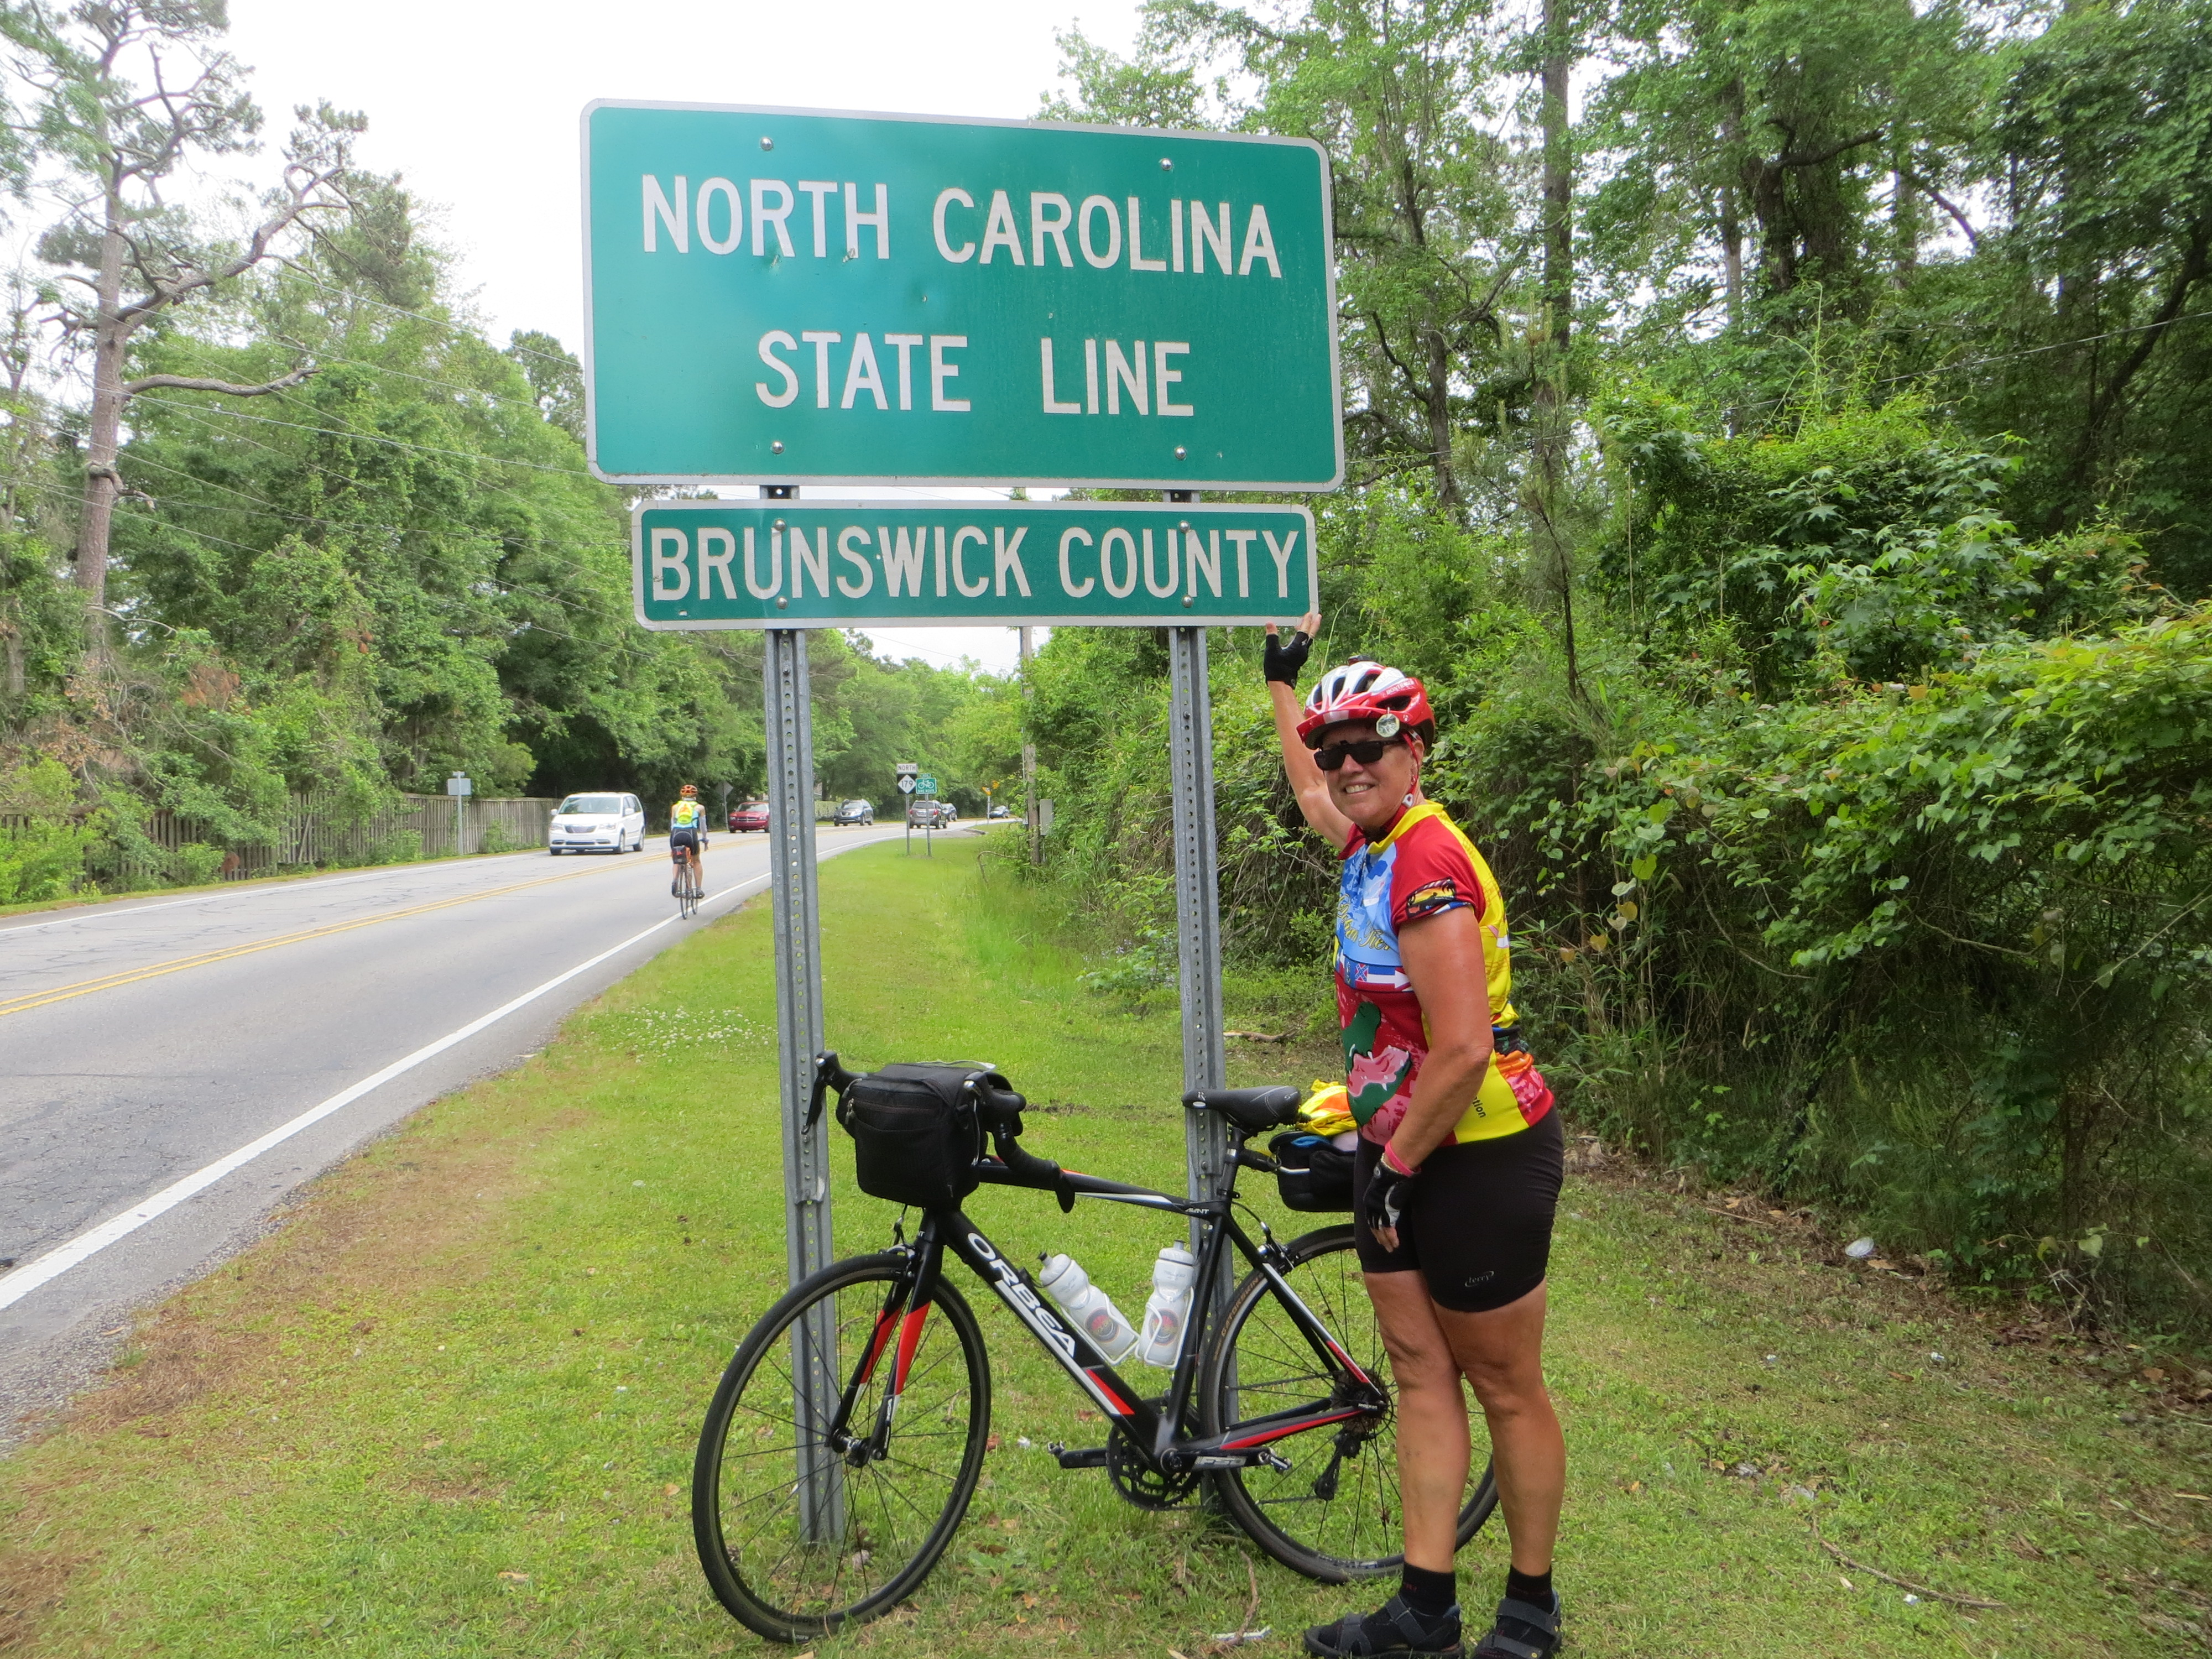 Nice to have a state line sign, unlike South Carolina.